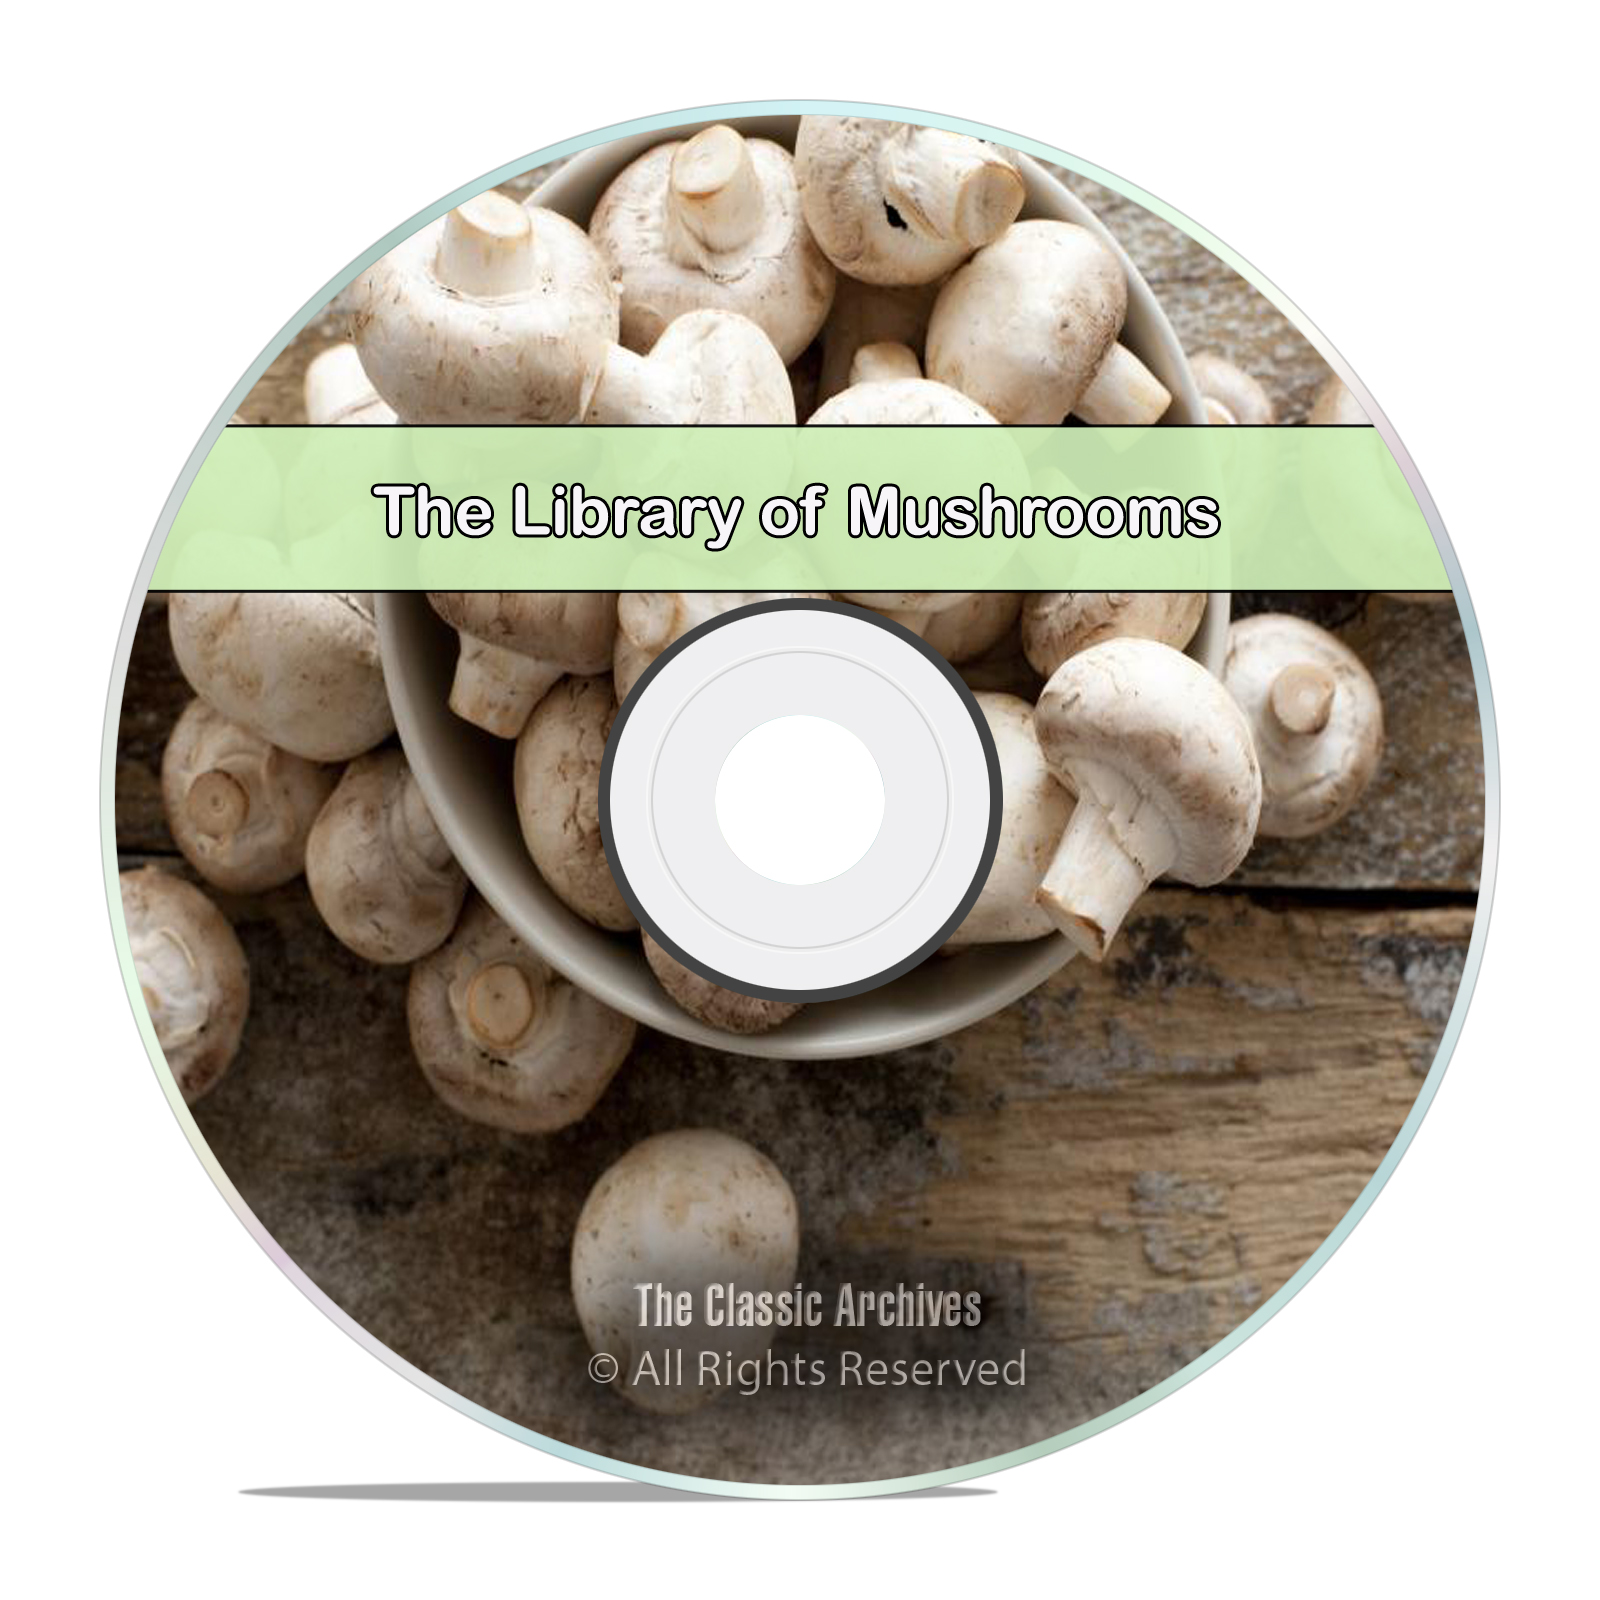 50 Books Library on Mushrooms, Fungi Spawn, How To Grow Find Edible Hunt CD